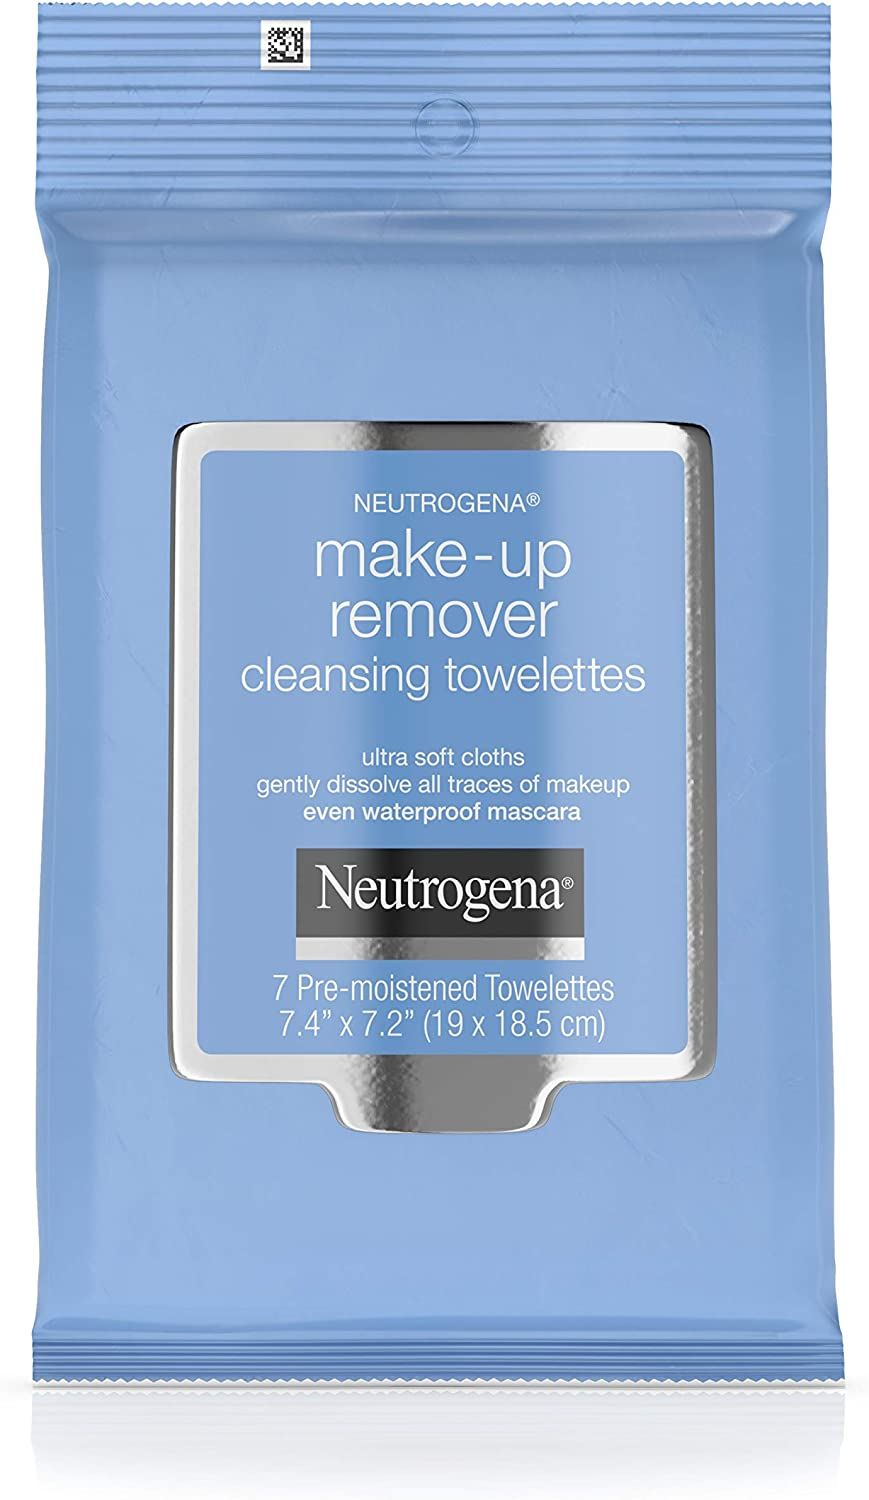 Neutrogena Makeup Remover Cleansing Towelettes - 7 per Pack - 24 Packs per case.